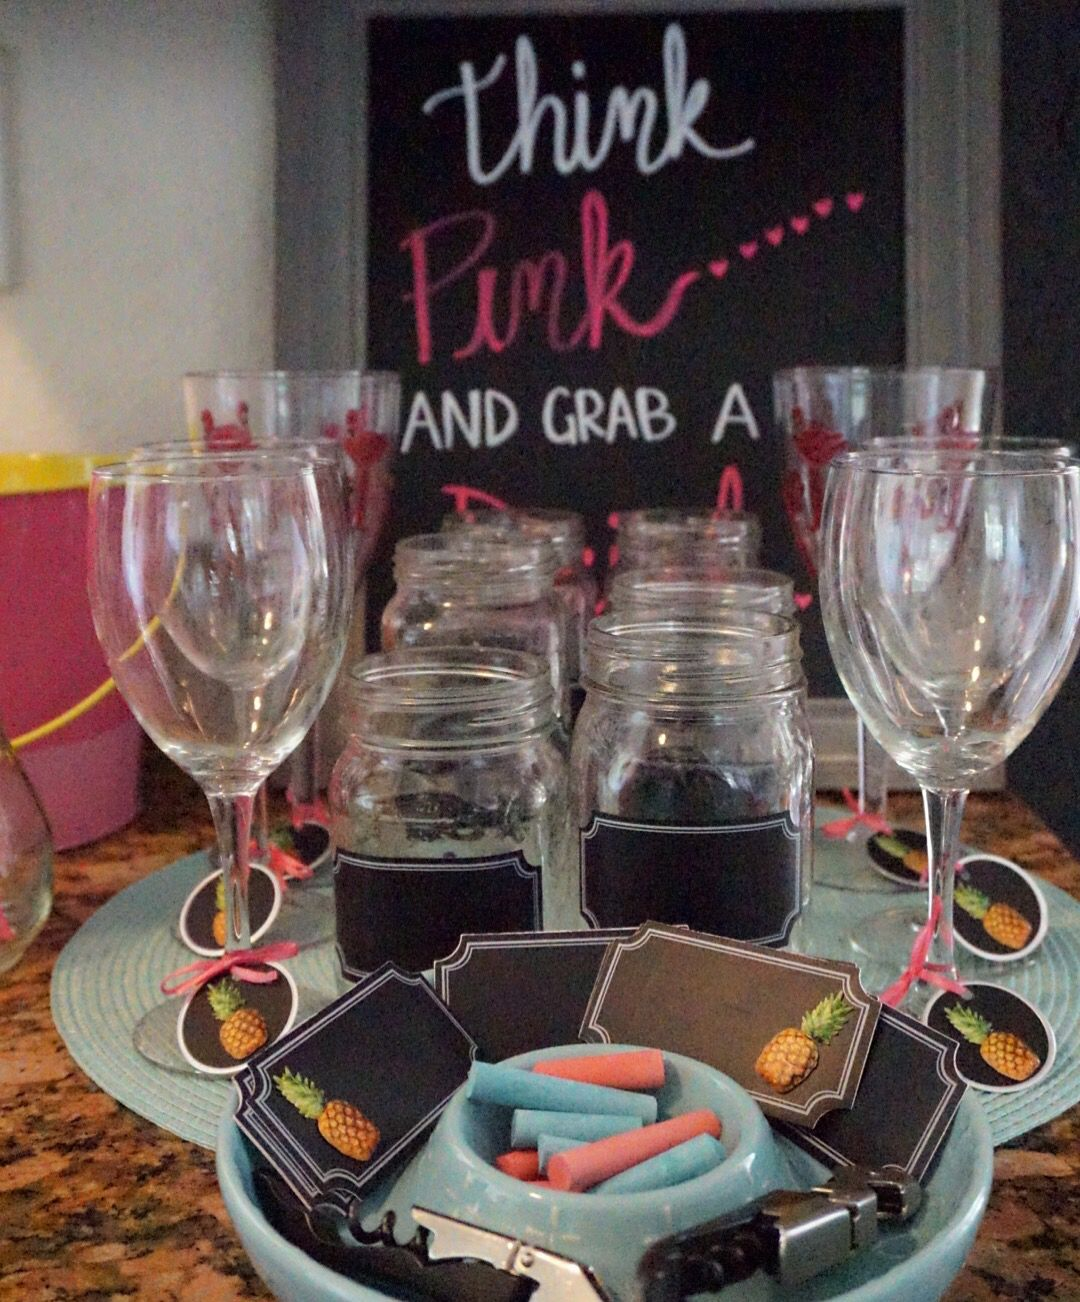 Think pink and grab a drink. Drink station. My crafty side